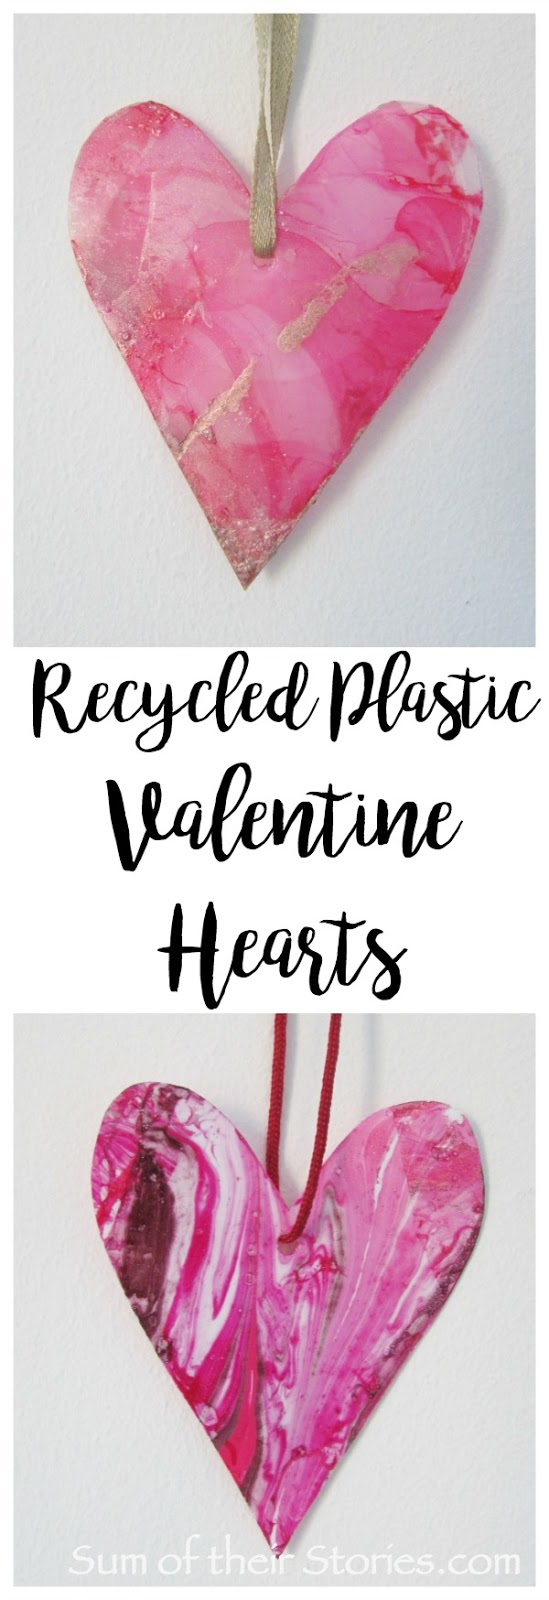 Recycled plastic valentine hearts with nail polish marbling